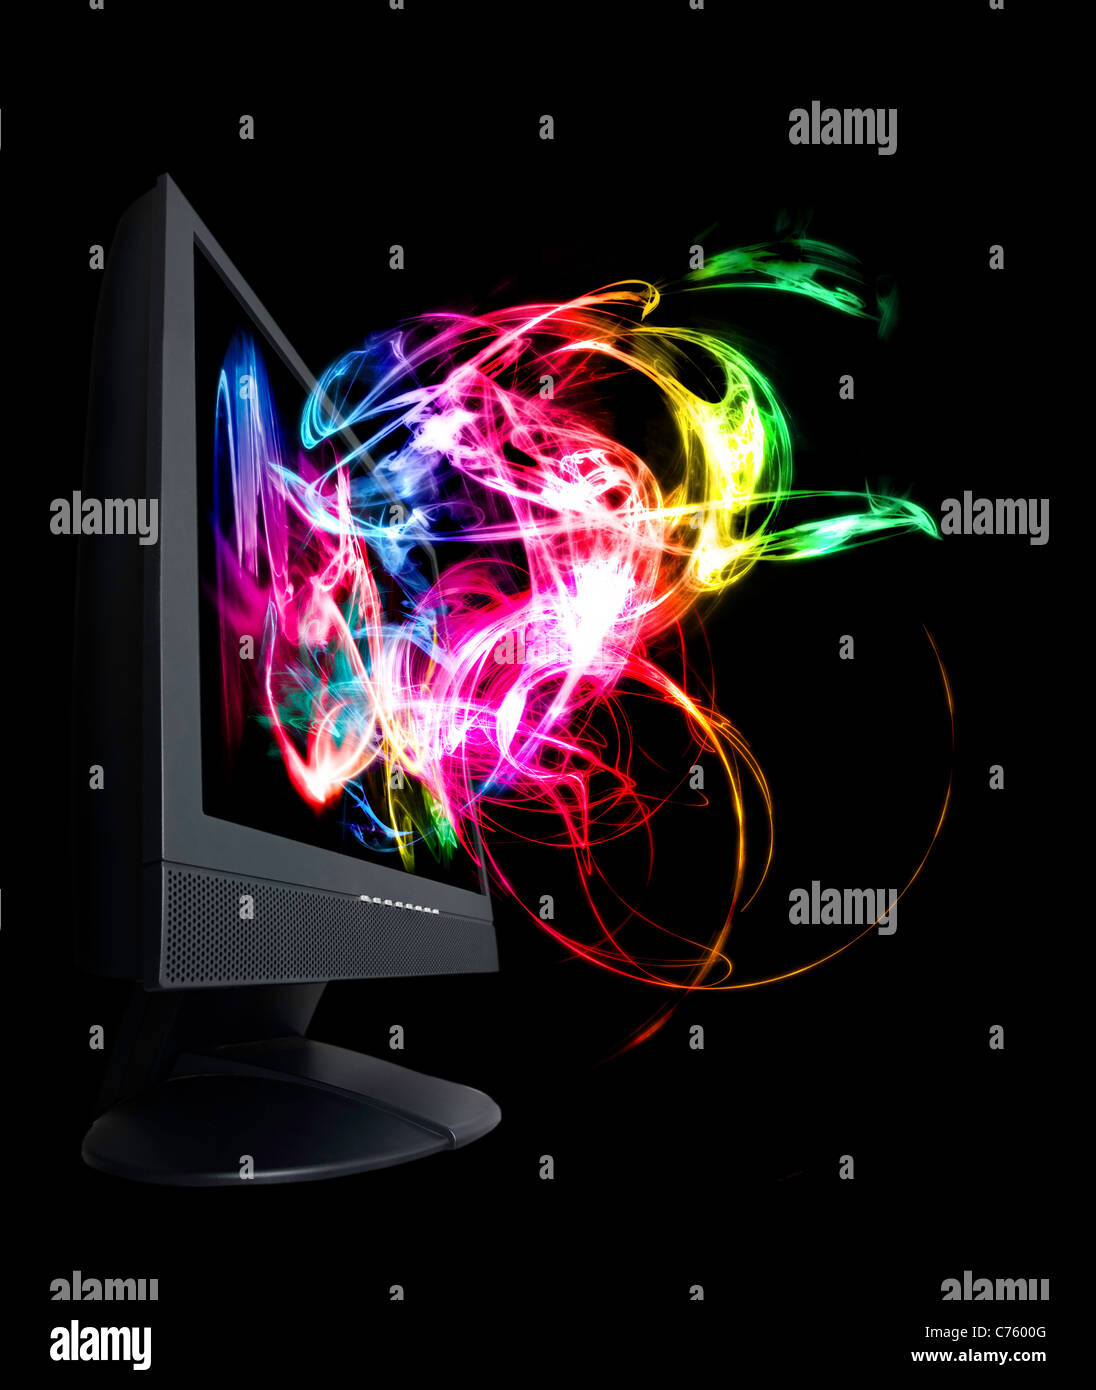 Monitor full of colorful and magical waves. - Stock Image